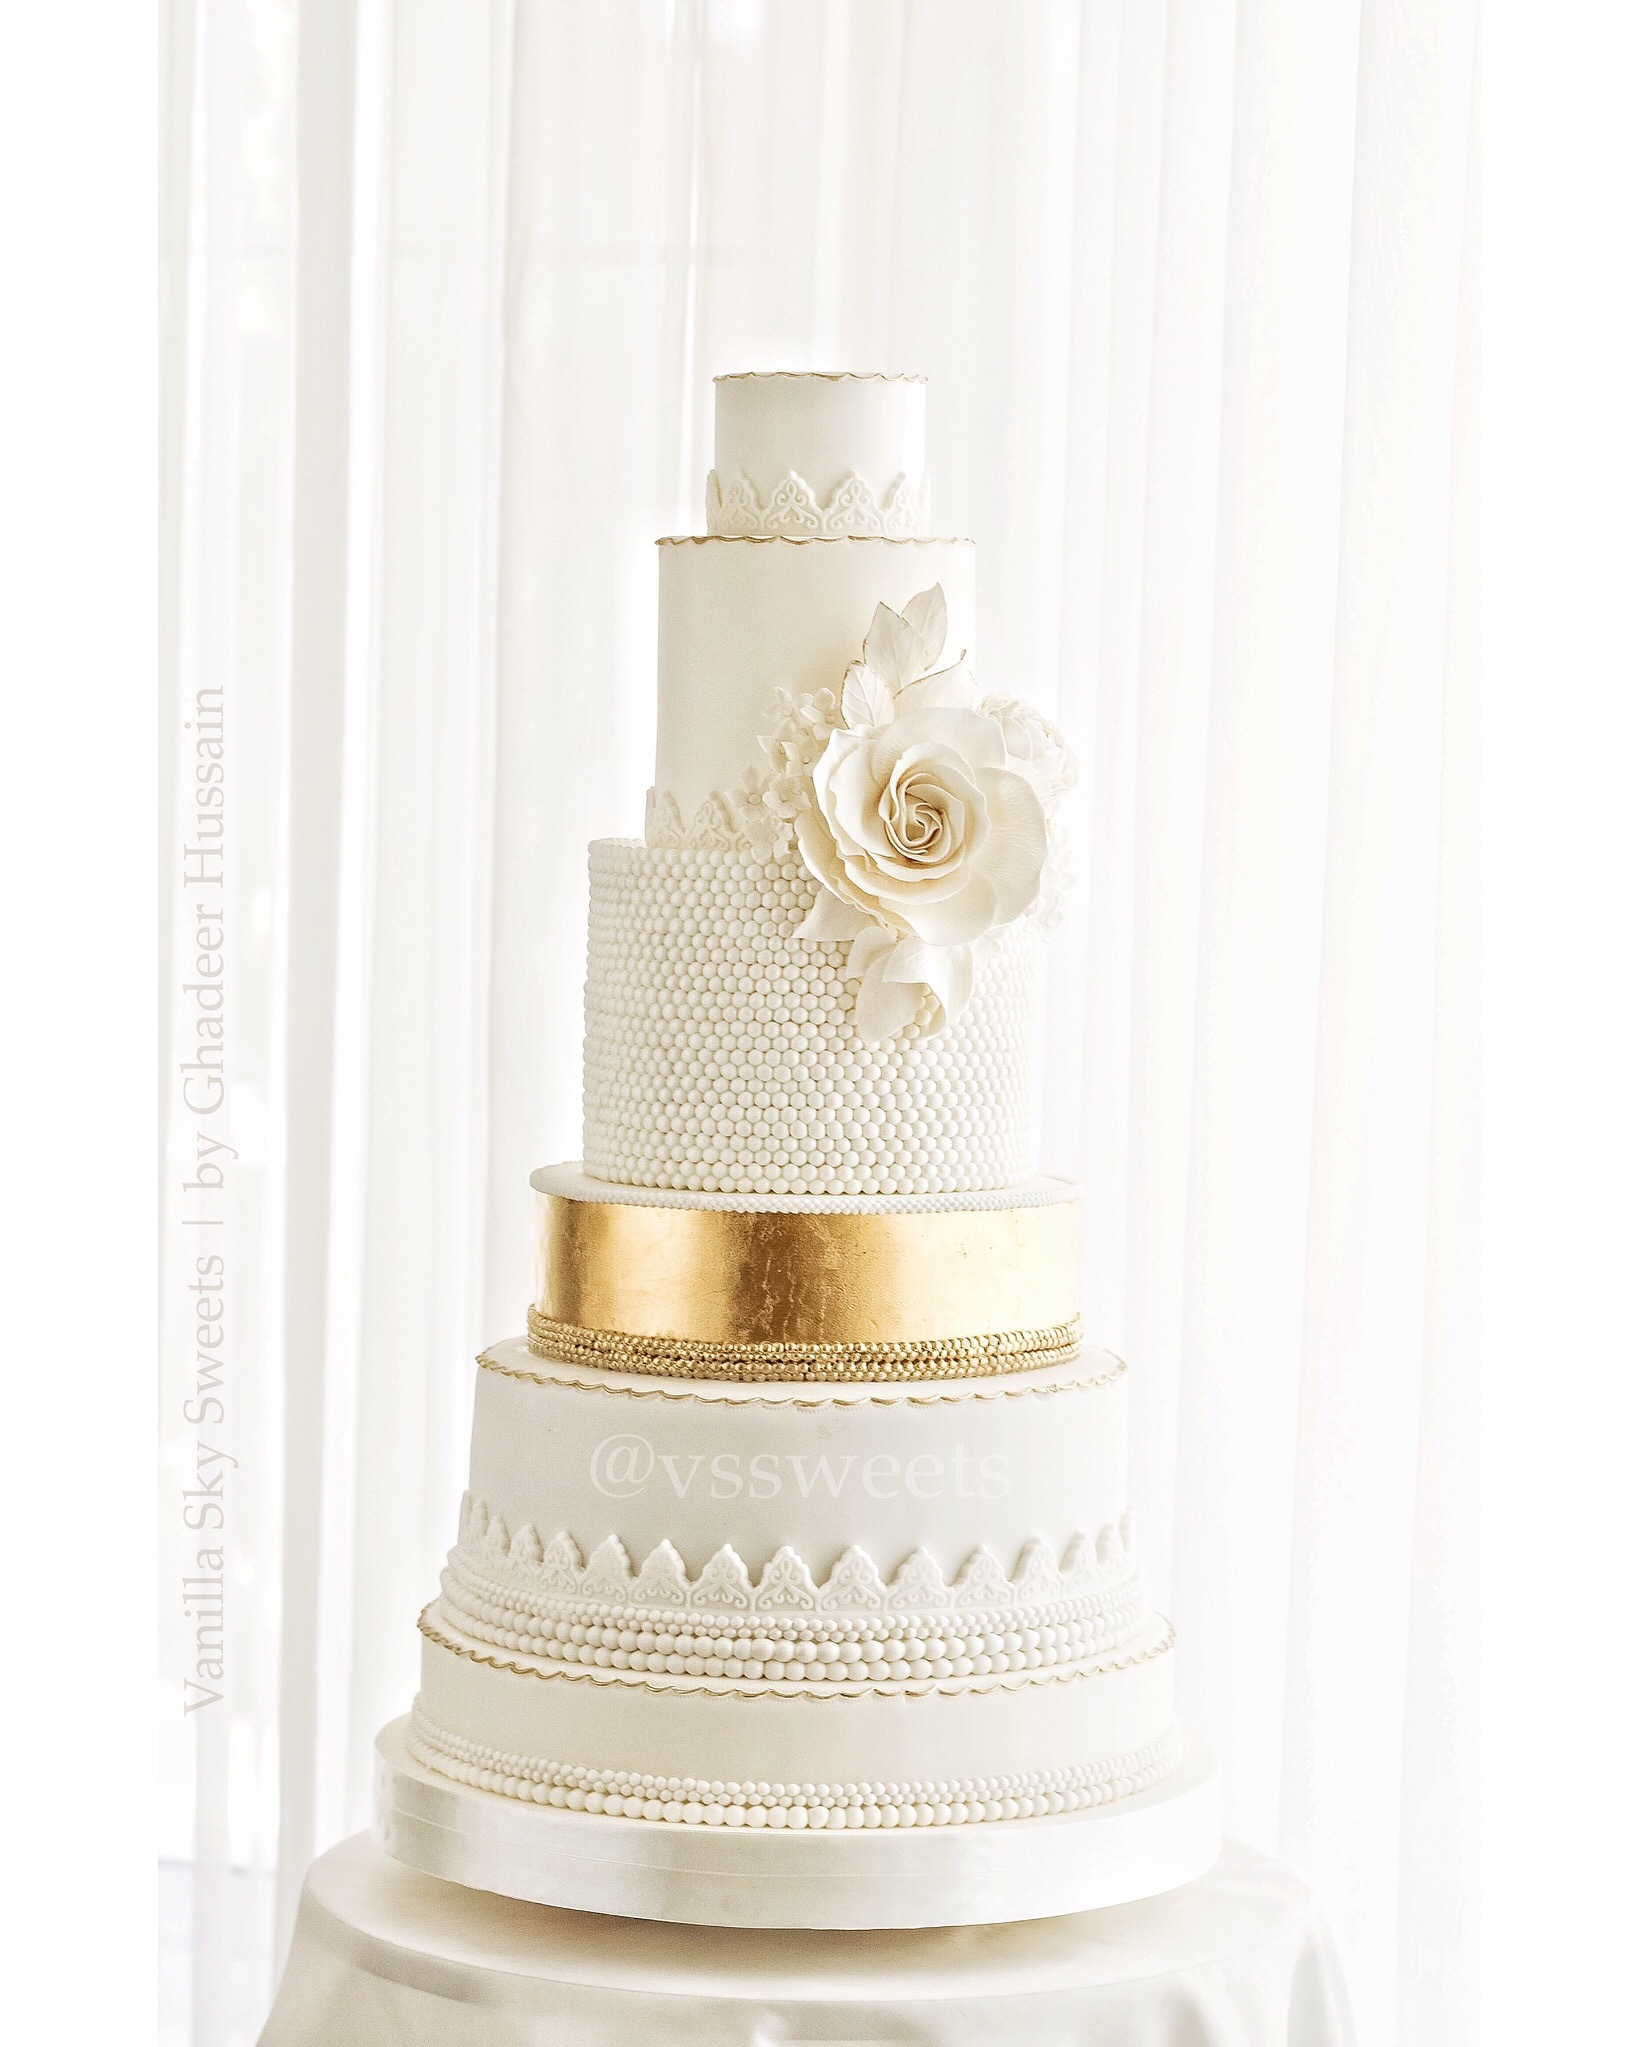 White fondant wedding cake with gold tier